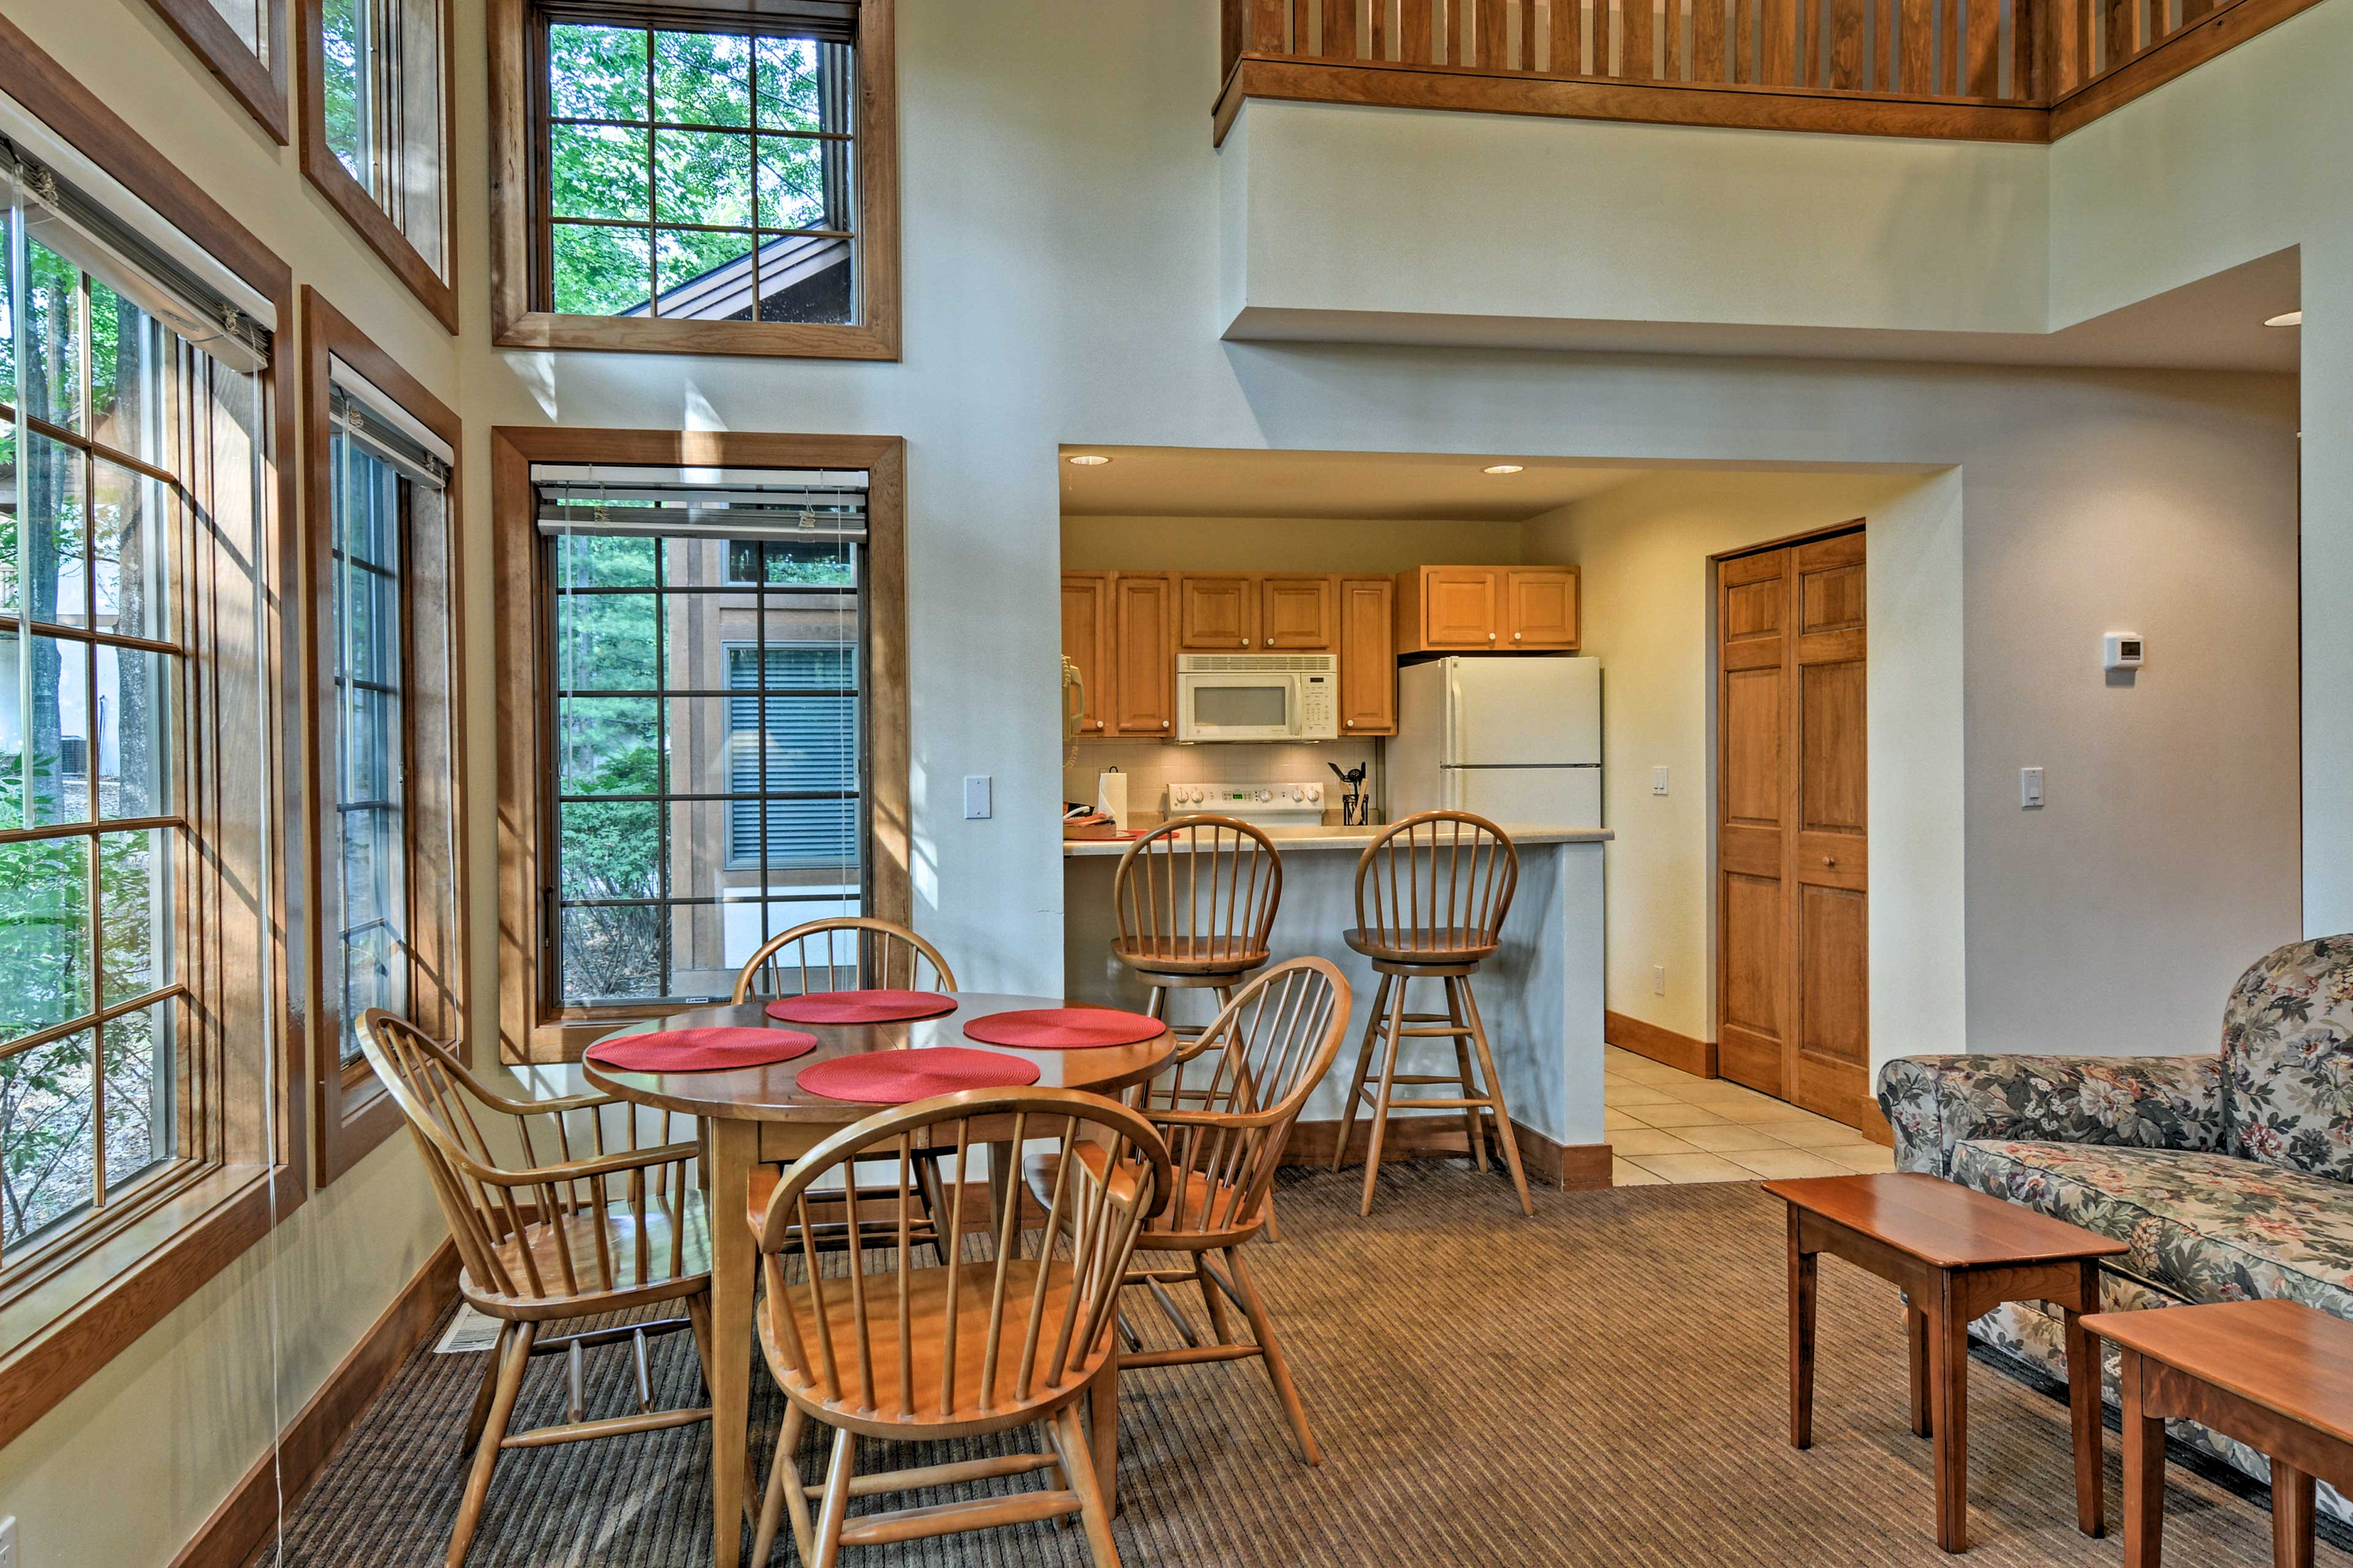 Devour delicious home-cooked meals at the 4-person dining table or kitchen bar.